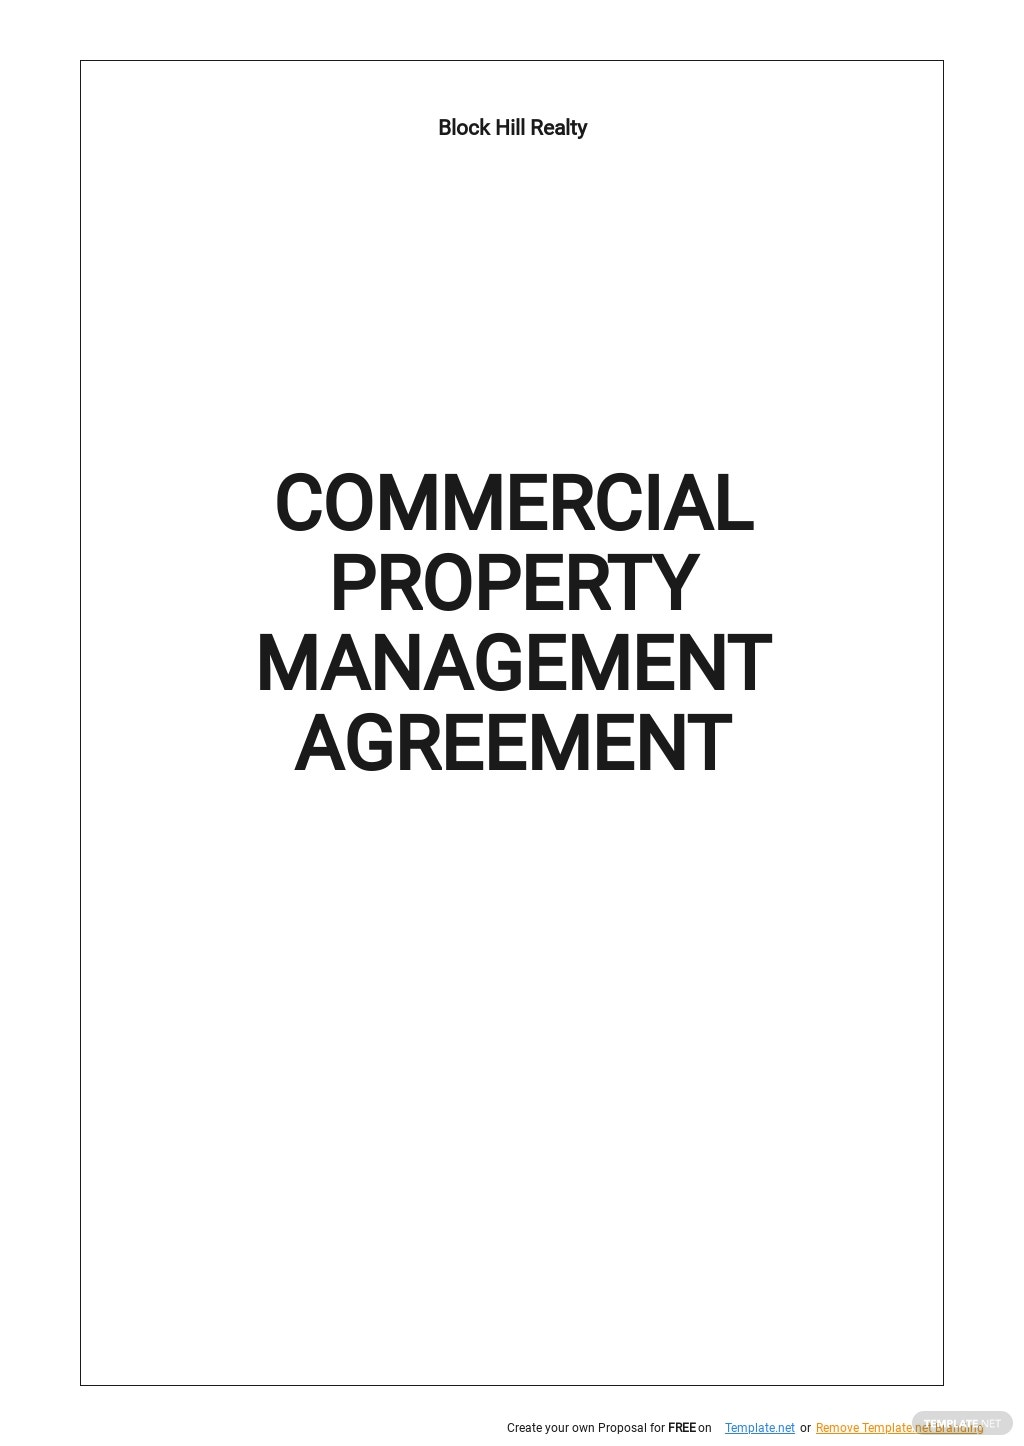 Commercial Property Management Agreement Template.jpe